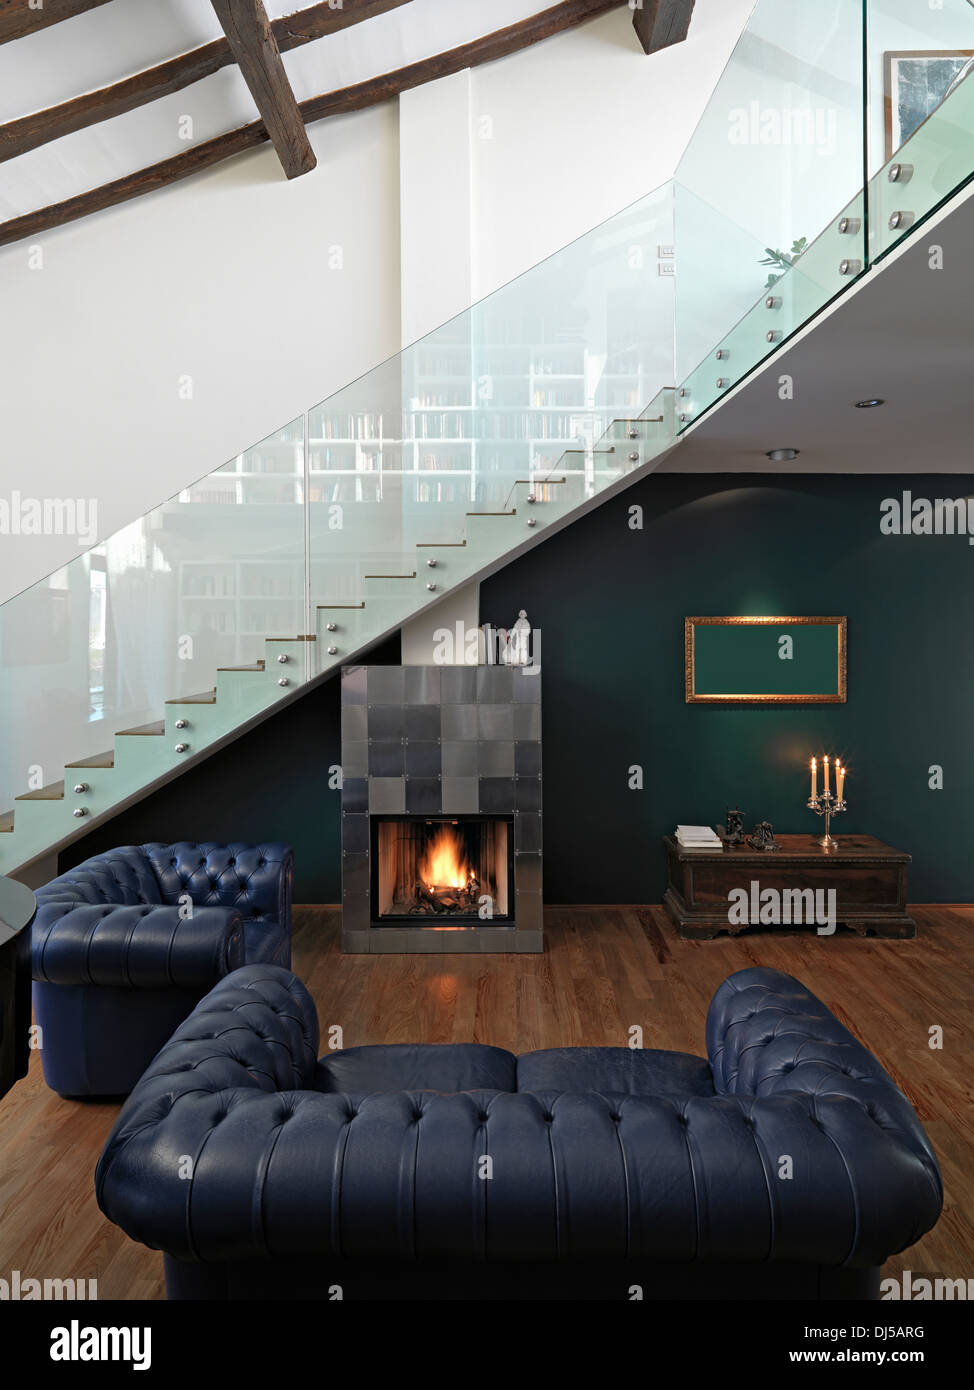 modern living room in the attic with fireplace, wood floor and staircase - Stock Image